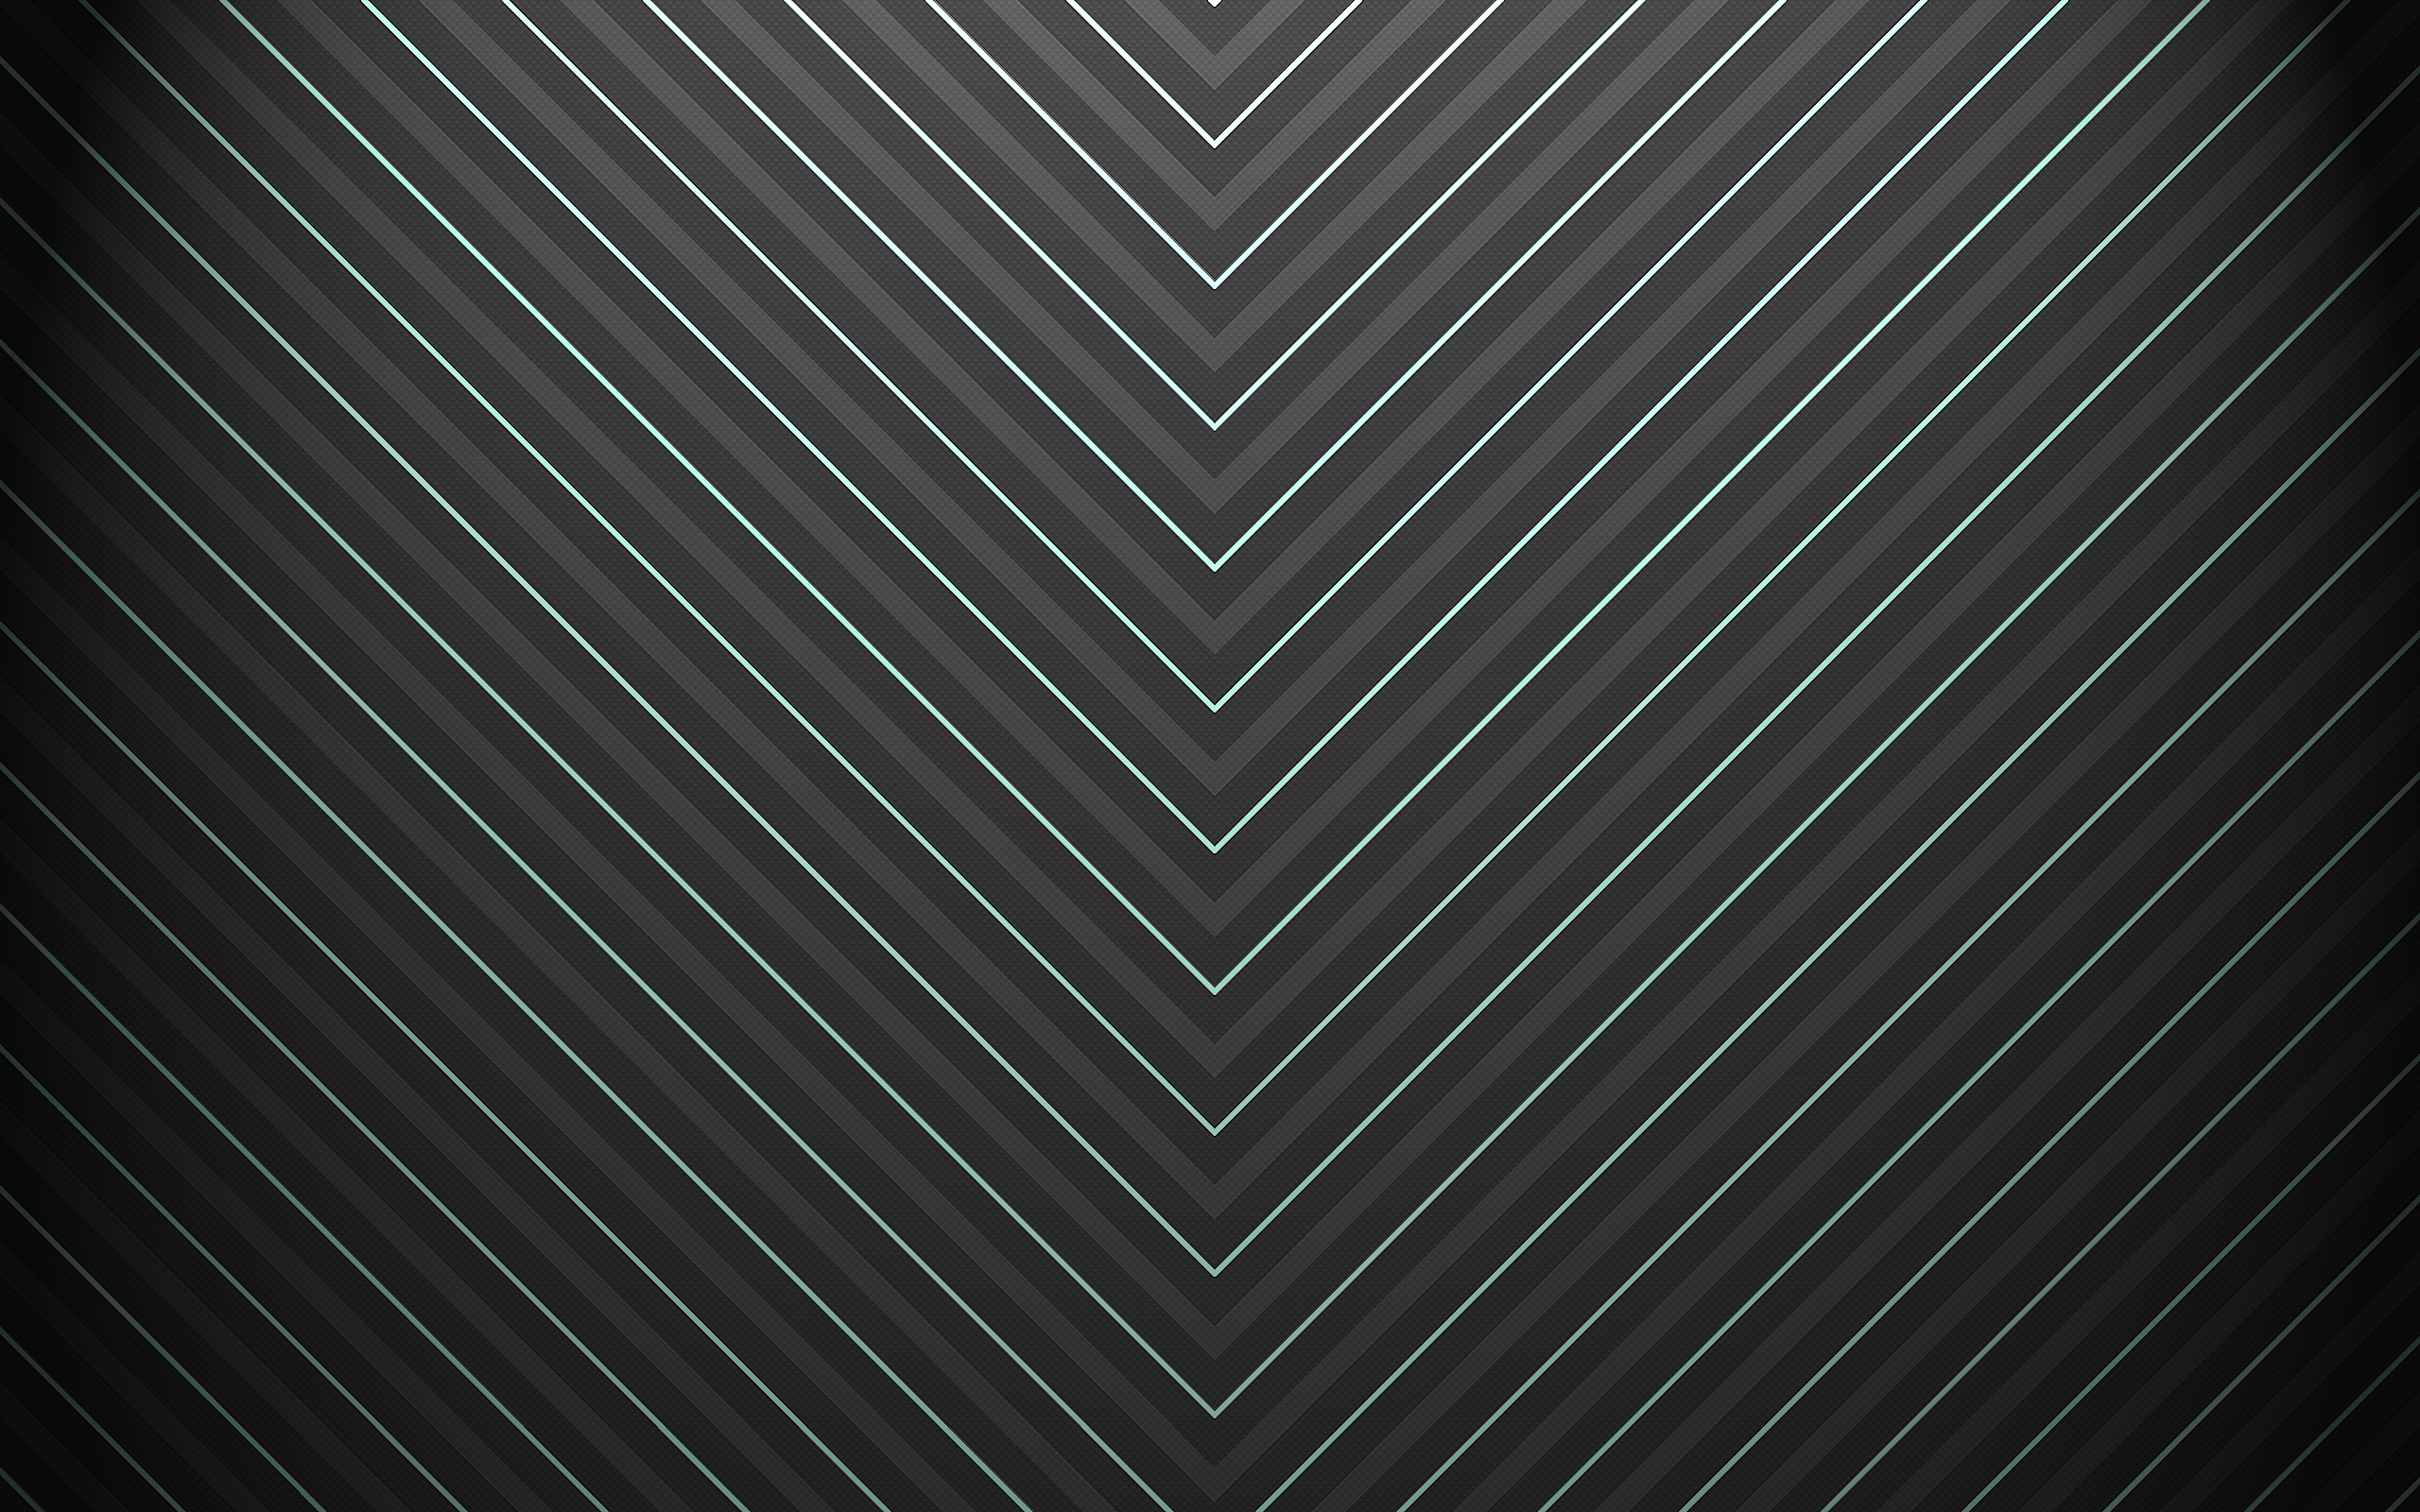 Line Art Resolution : Android wallpaper get in line